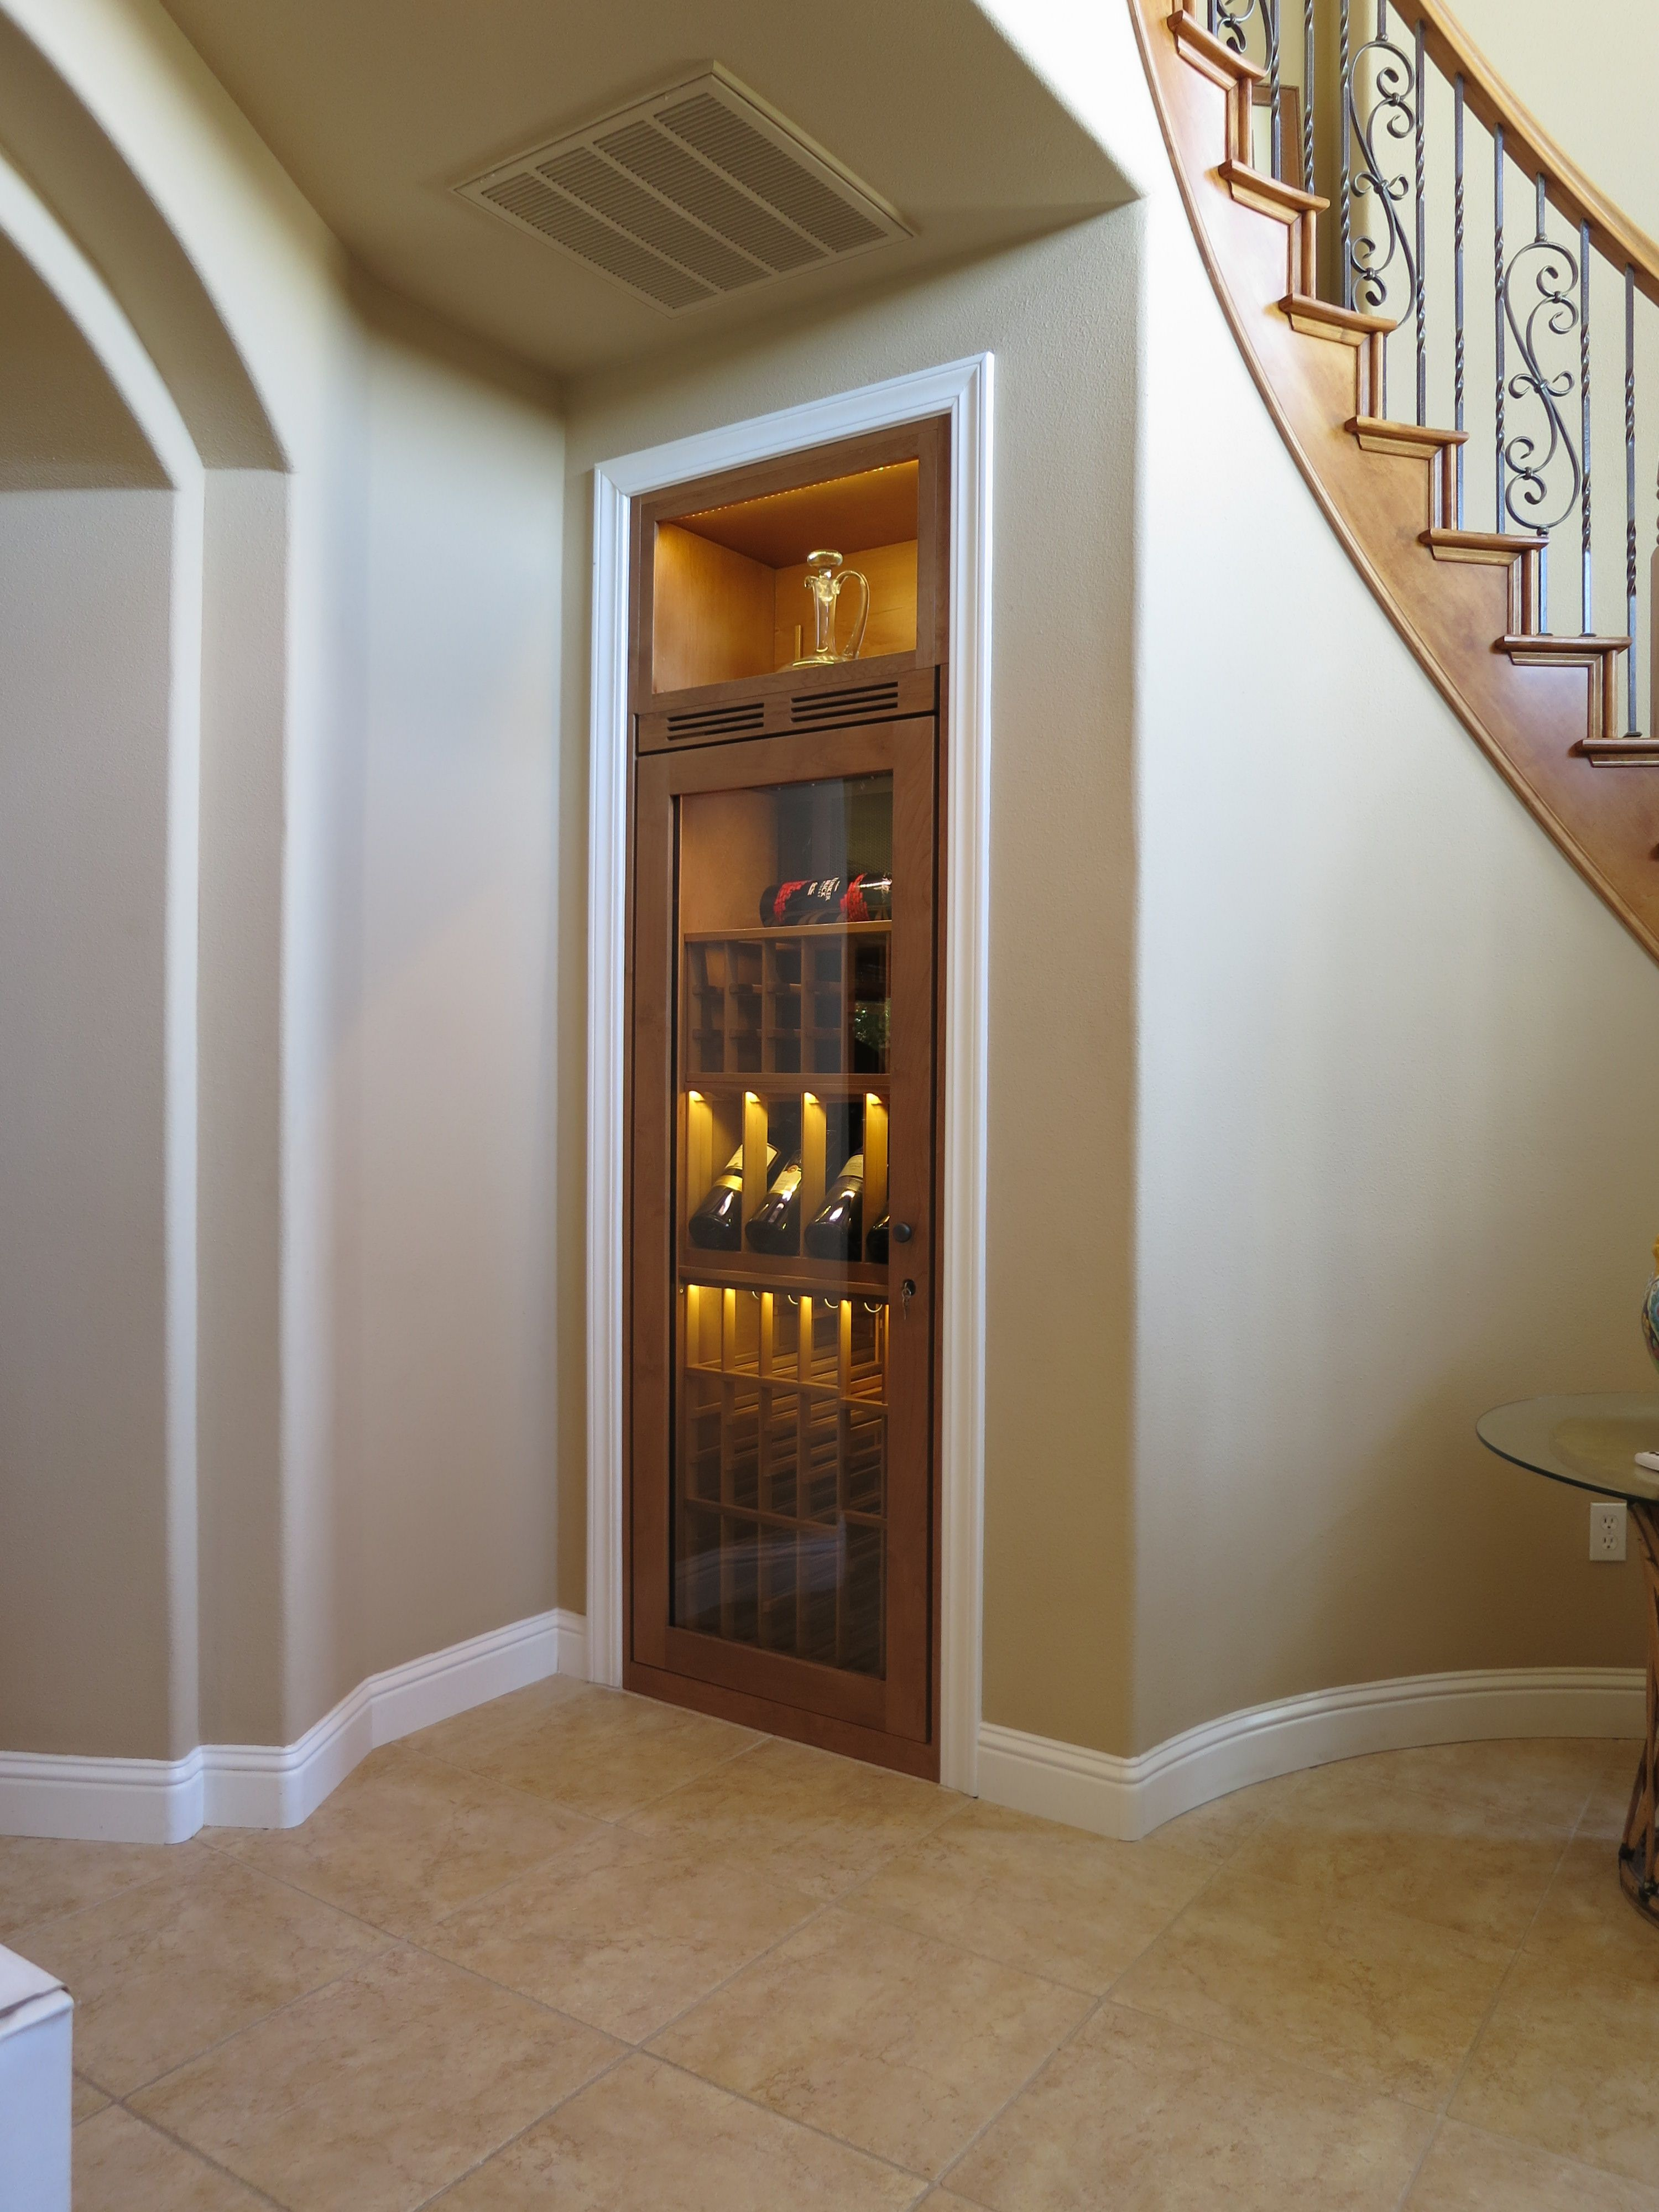 Closet Cabinet By Vinotheque Wine Cellars | Wine Cabinets ...